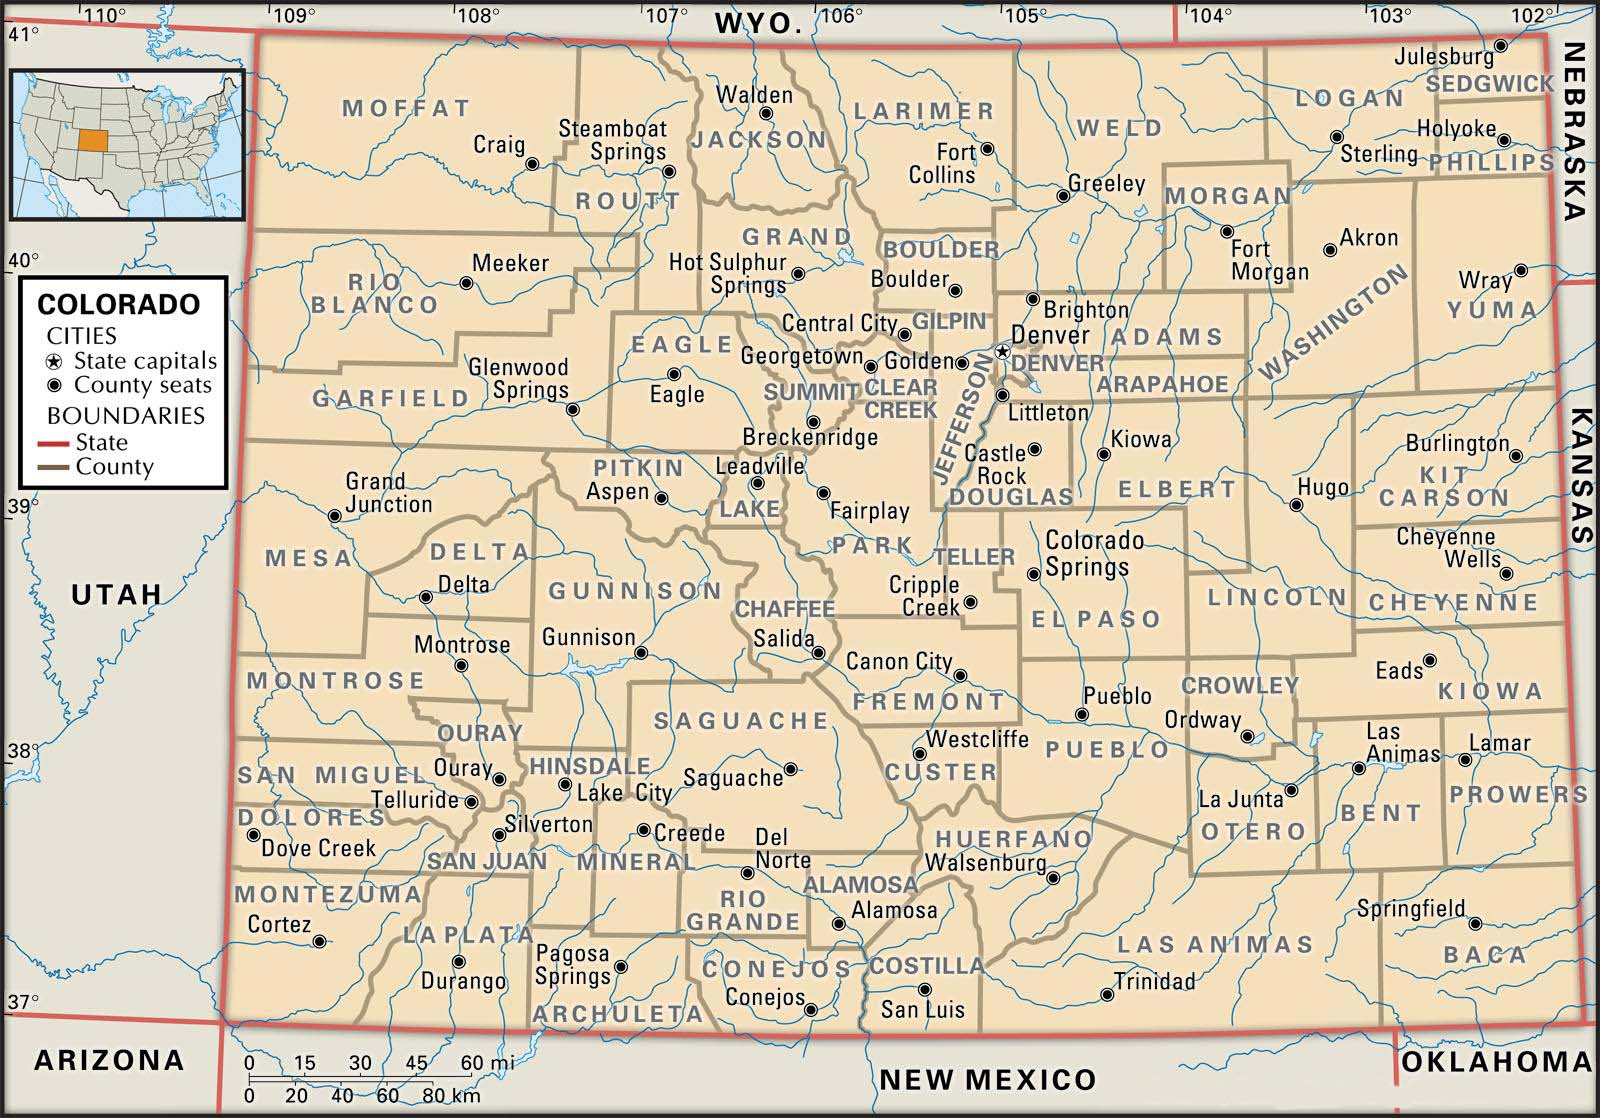 Old Historical City, County and State Maps of Colorado